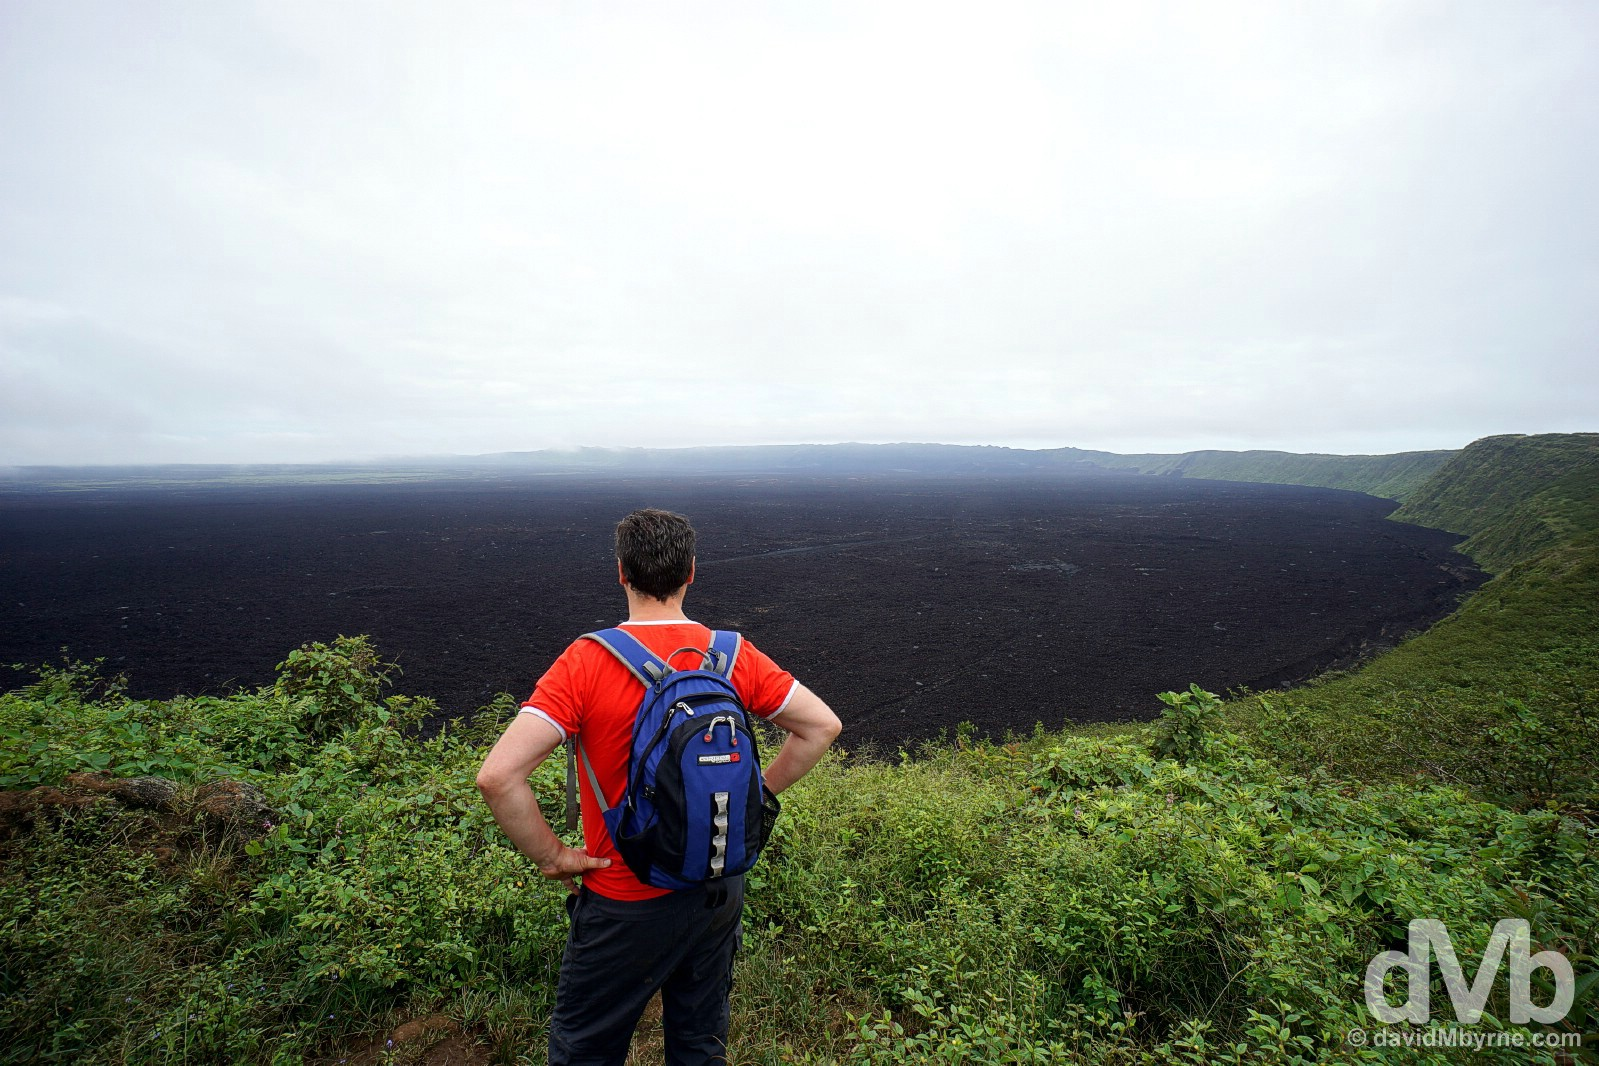 Overlooking the massive caldera of Sierra Negra on Isla Isabala, Galapagos, Ecuador. July 20, 2015.